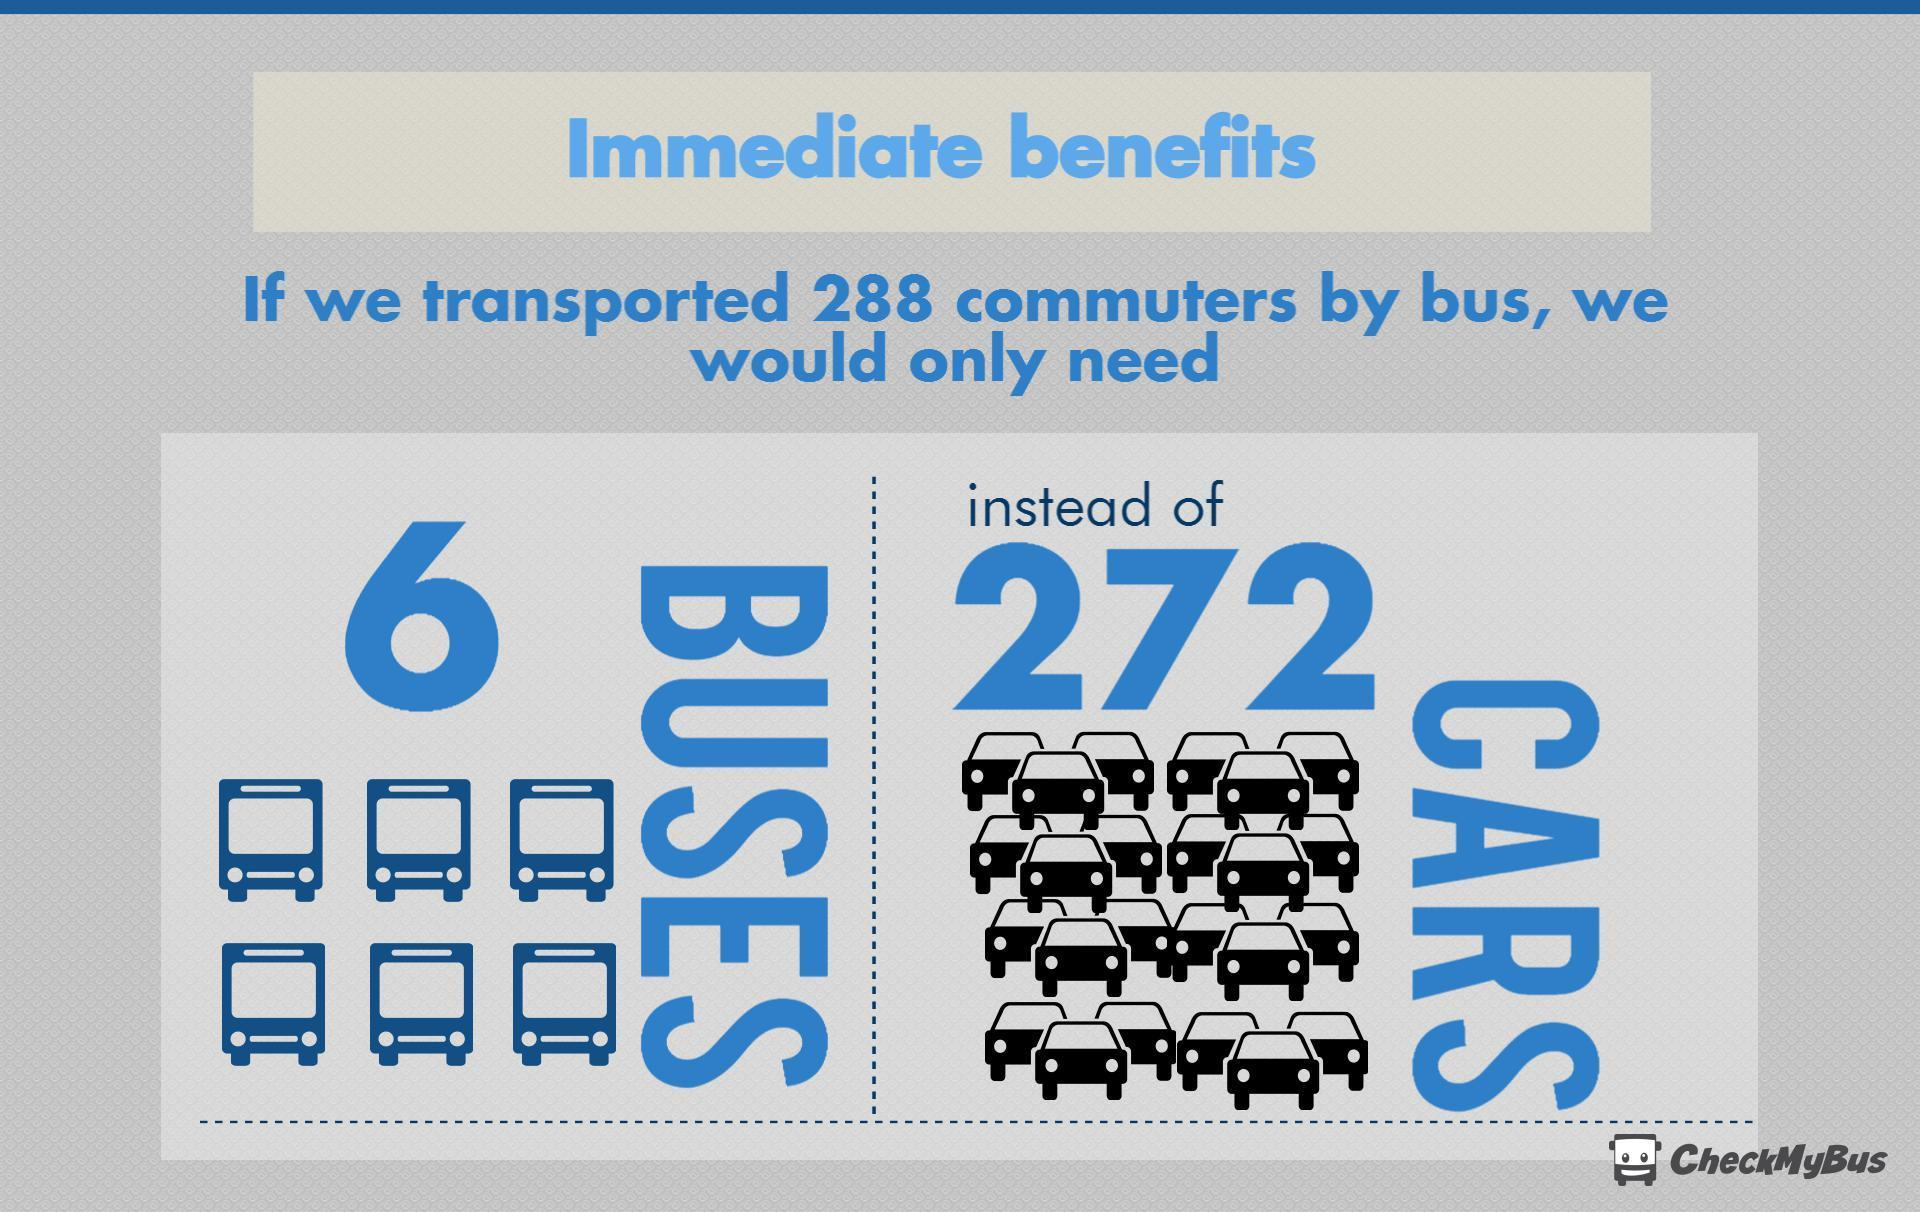 Only 6 buses are needed to transport 288 commuters